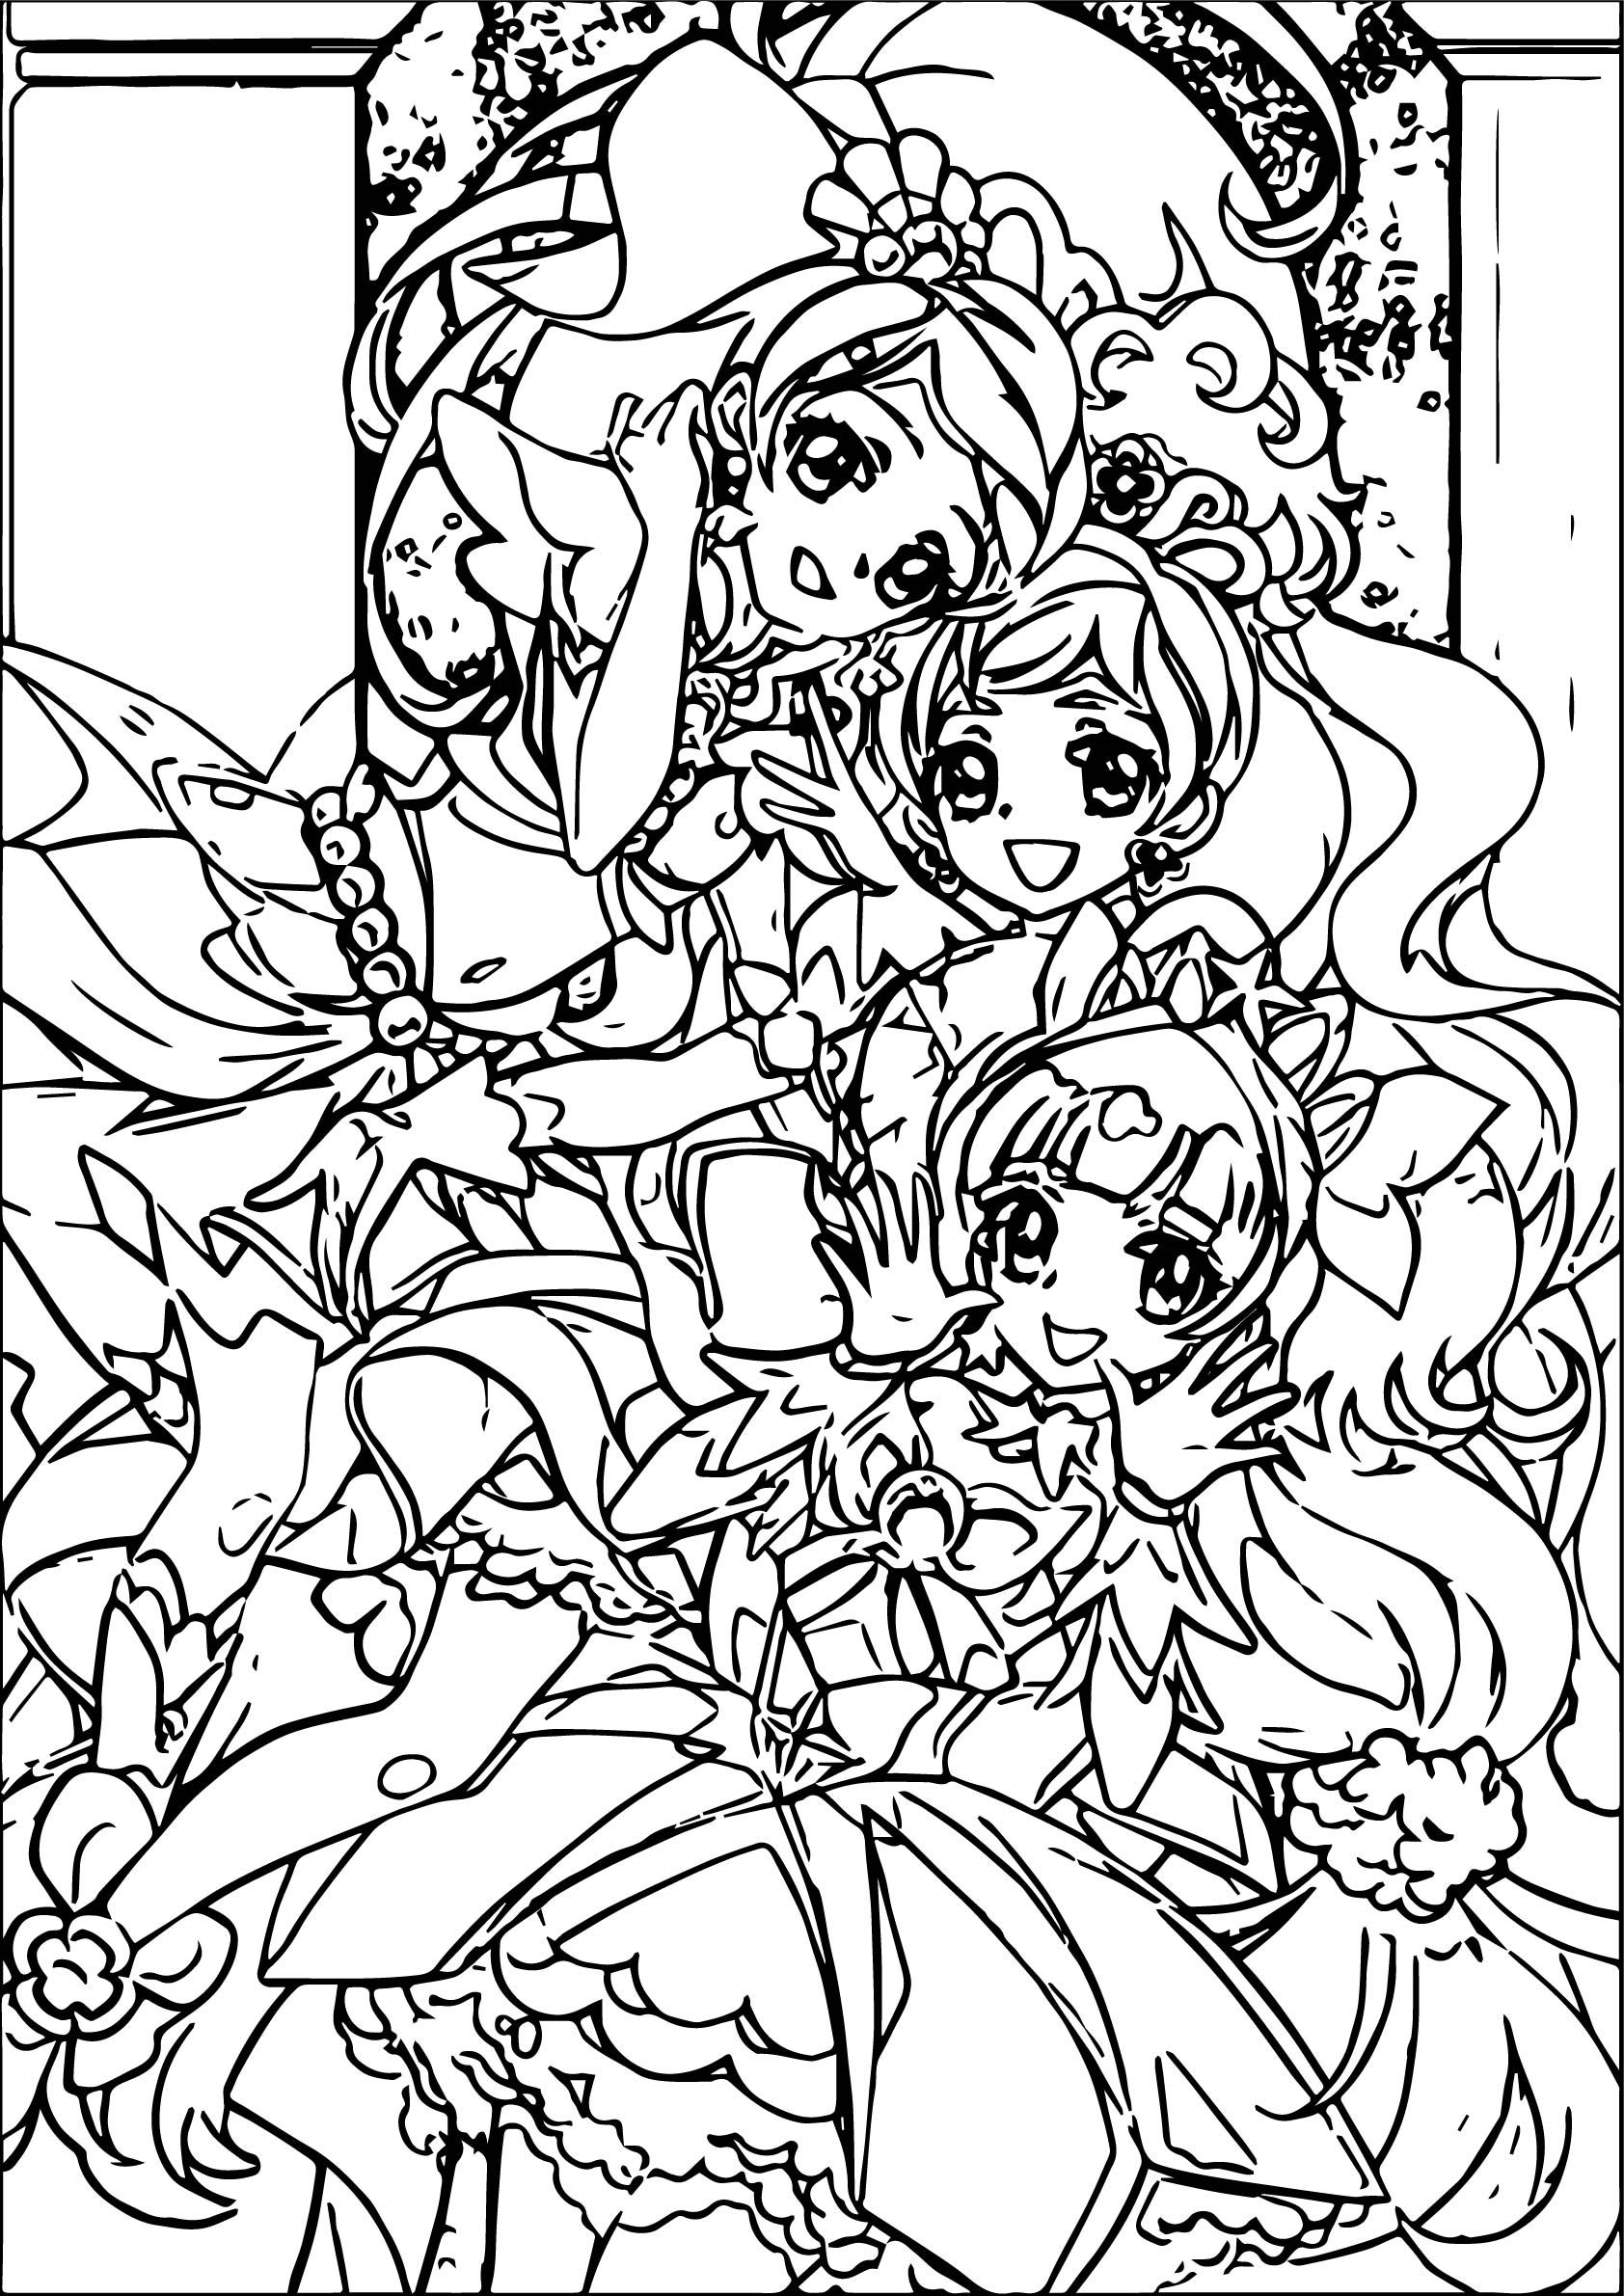 three girls coloring page best friends coloring pages best coloring pages for kids three page coloring girls